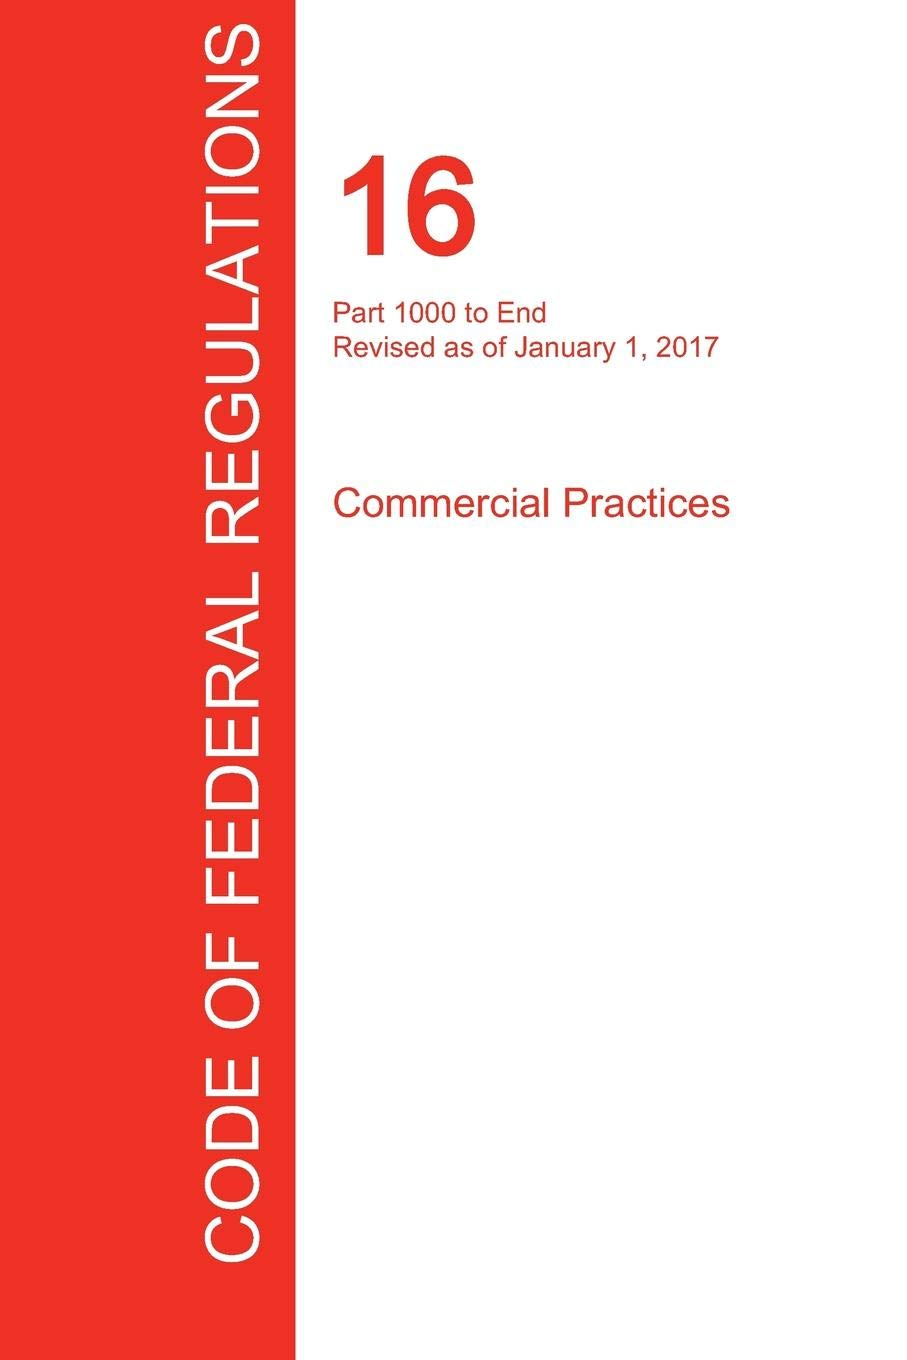 CFR 16, Part 1000 to End, Commercial